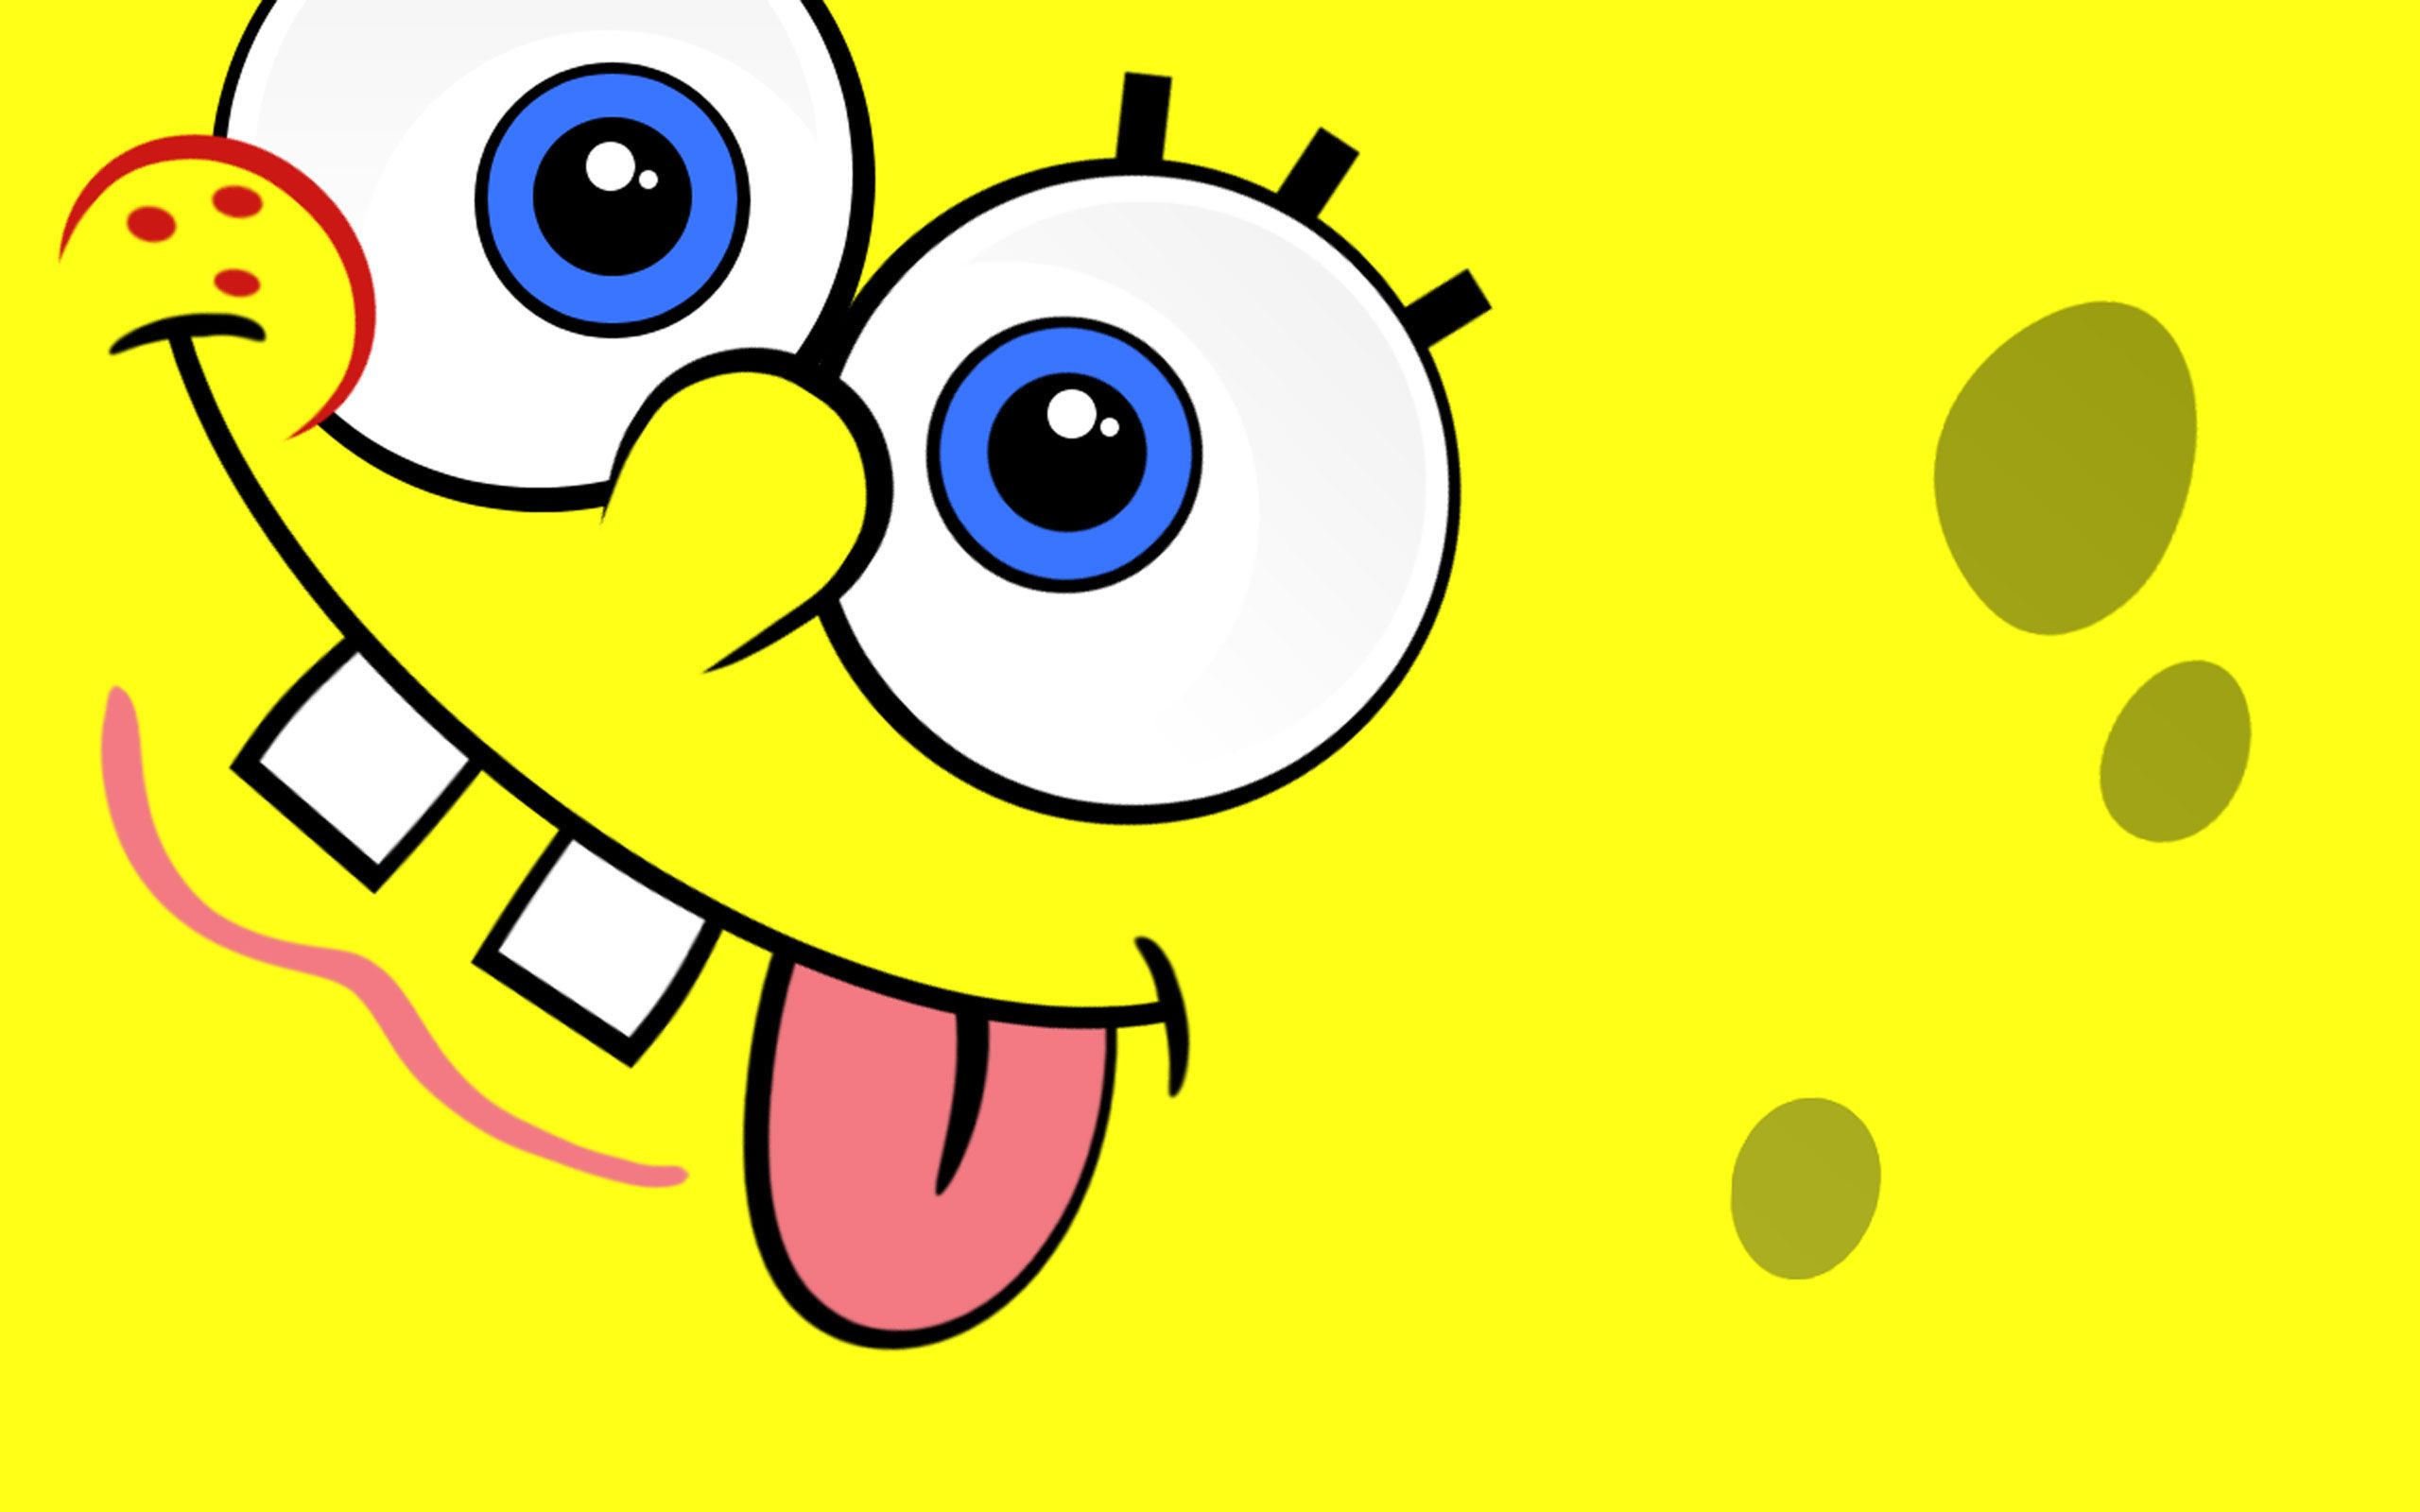 Free Spongebob Squarepants Funny Computer Desktop Wallpapers Pictures Images Spongebob Wallpaper Lucu Kartun